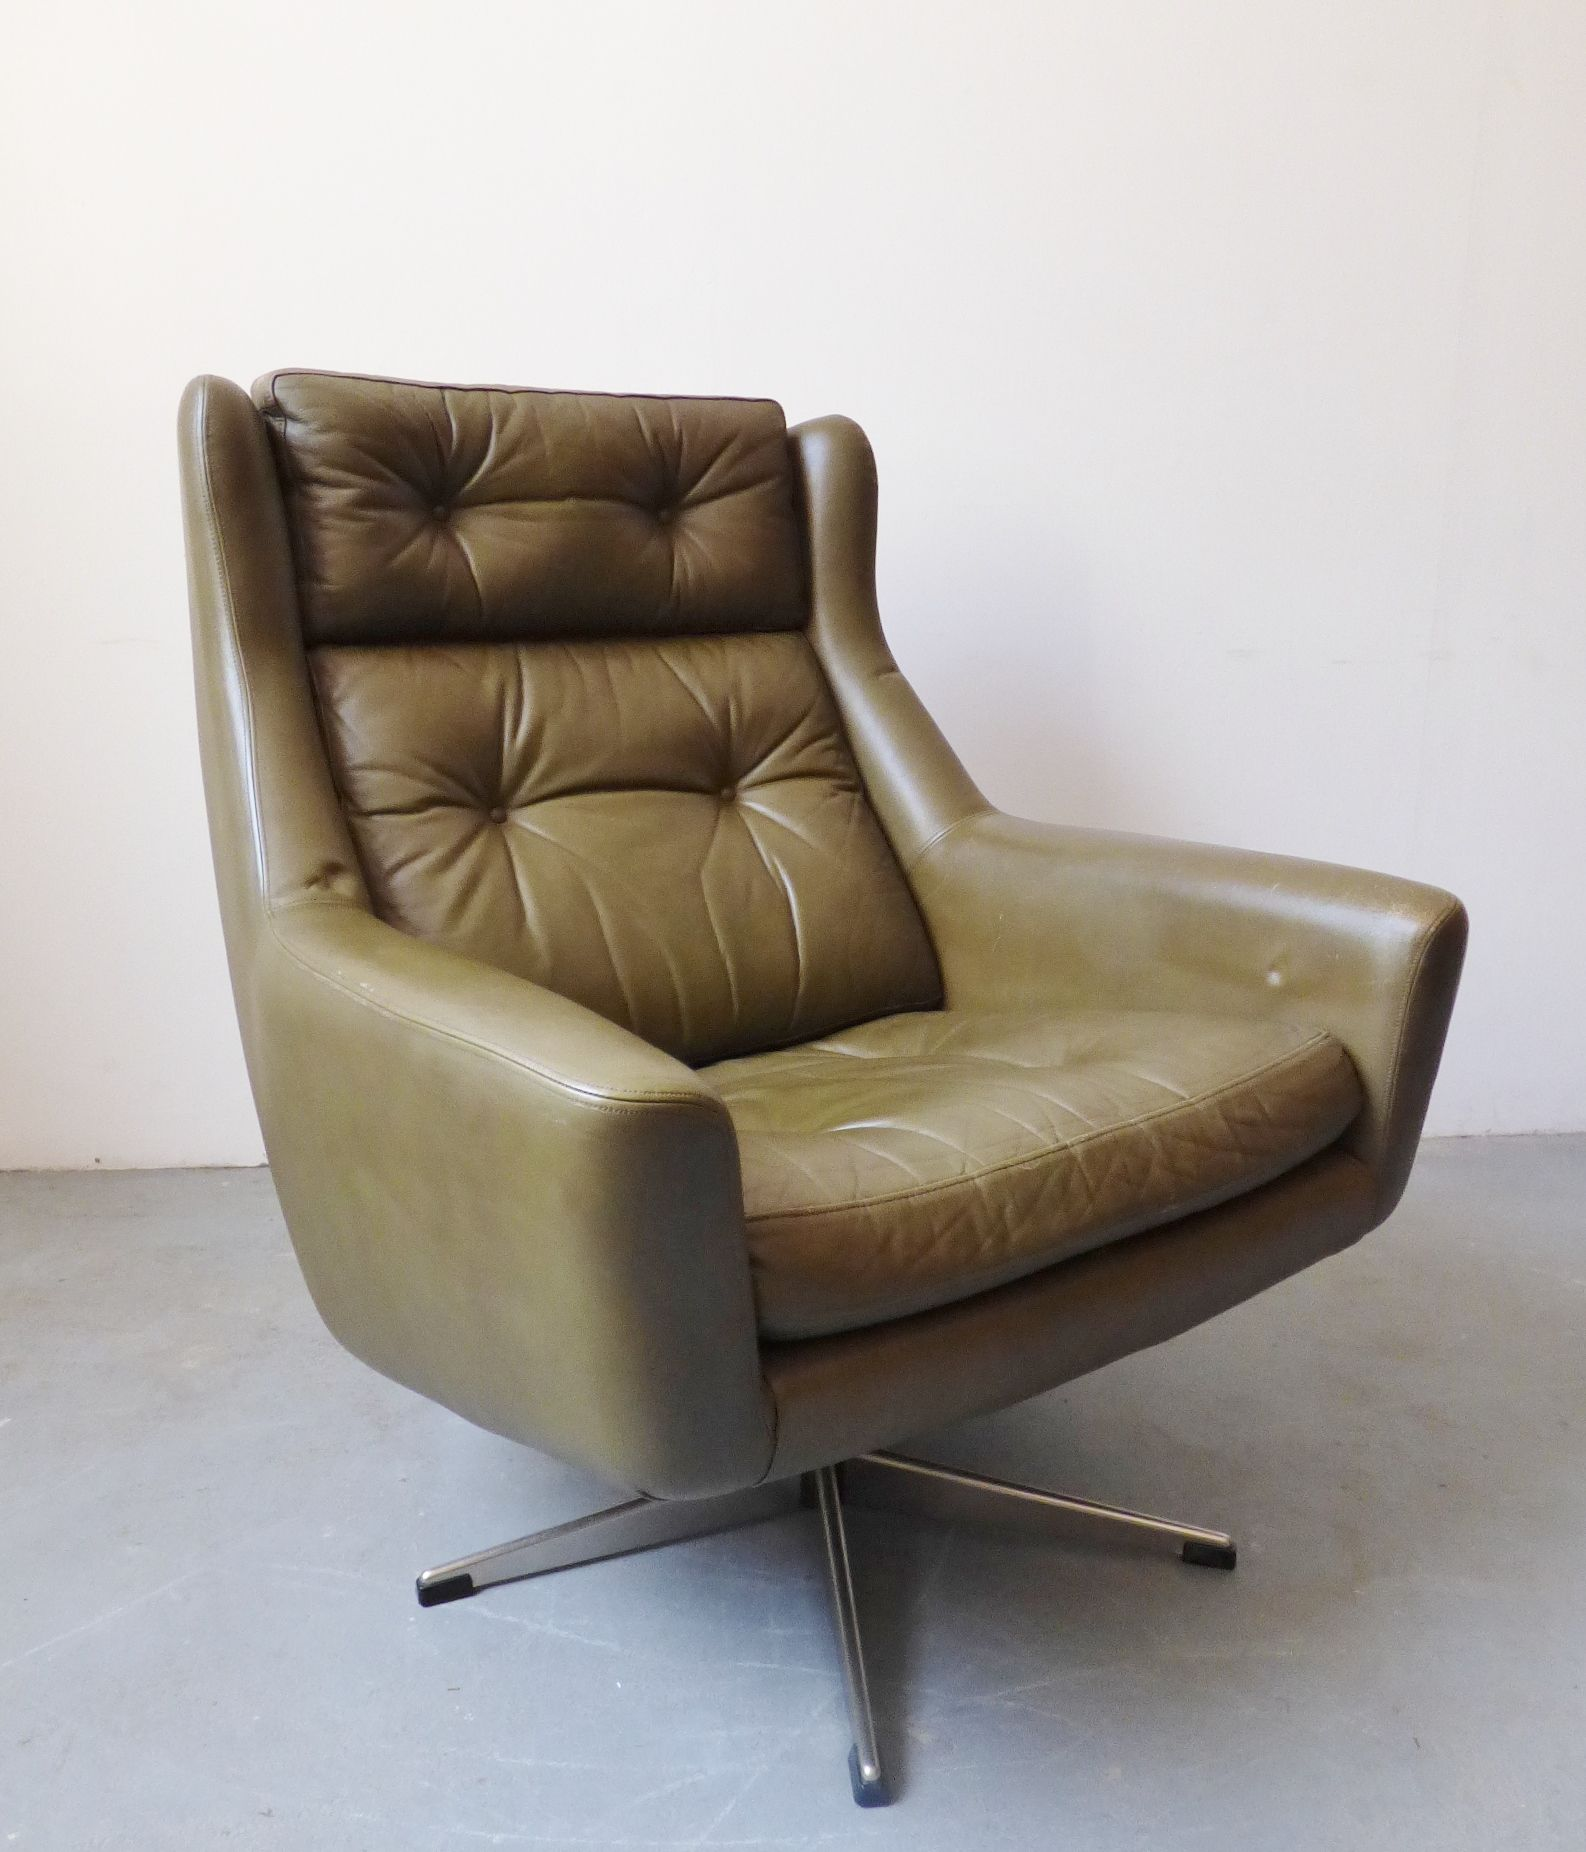 1960s Danish Green Leather Eran Swivel Chair Chairs Furniture Swivel Chair Chair